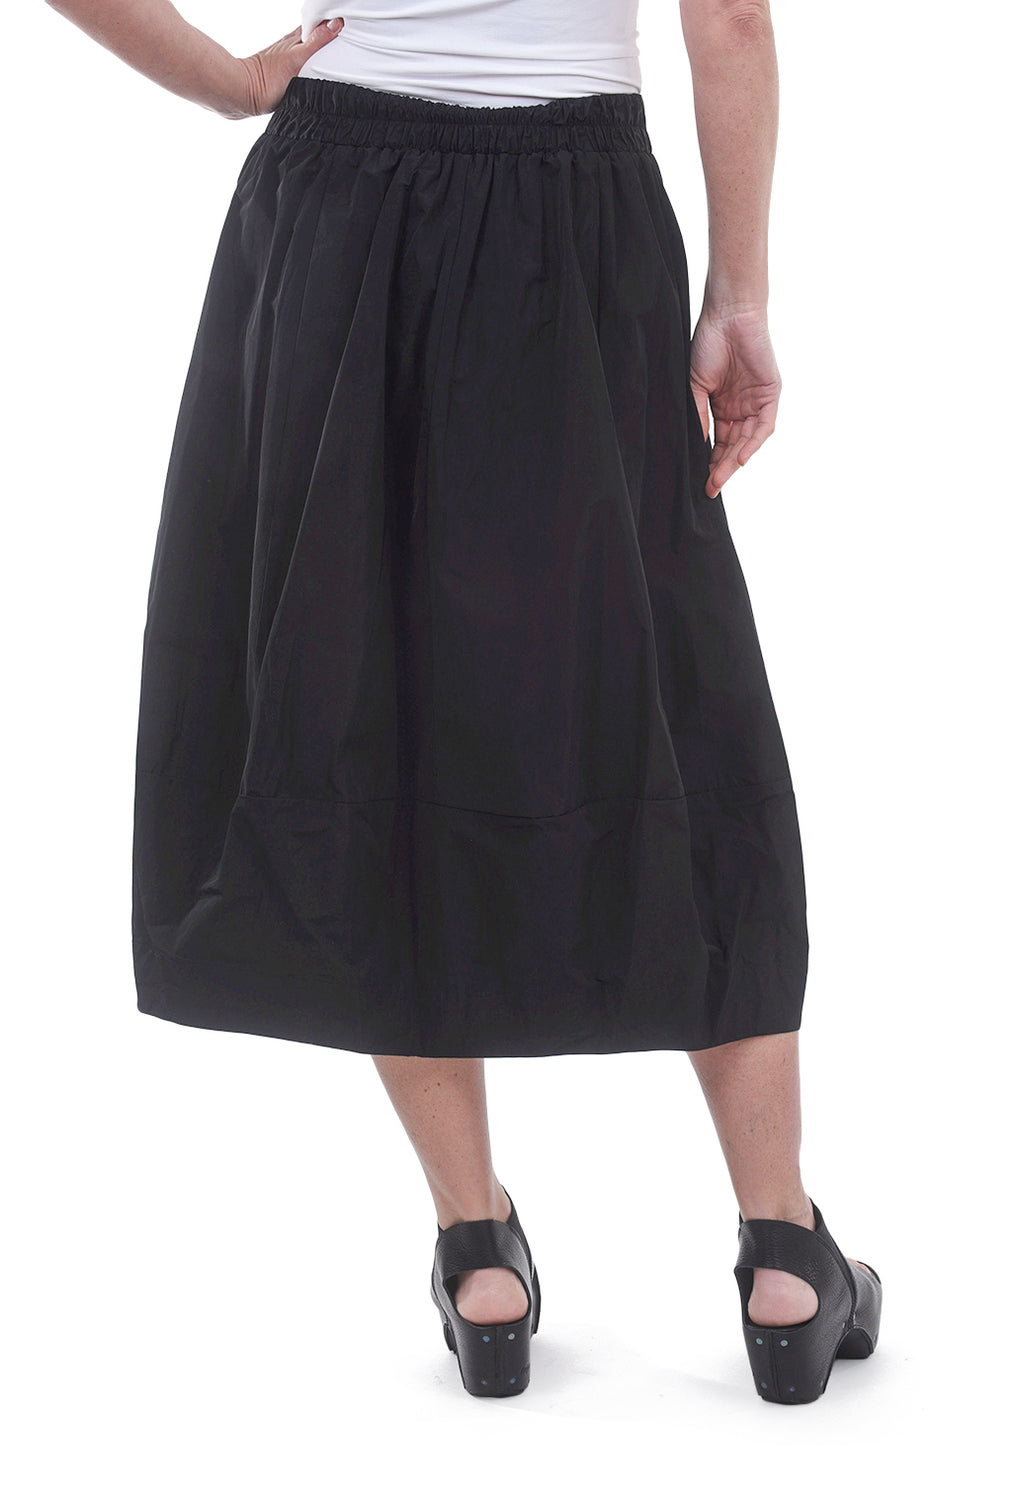 Sun Kim Midtown Skirt, Black